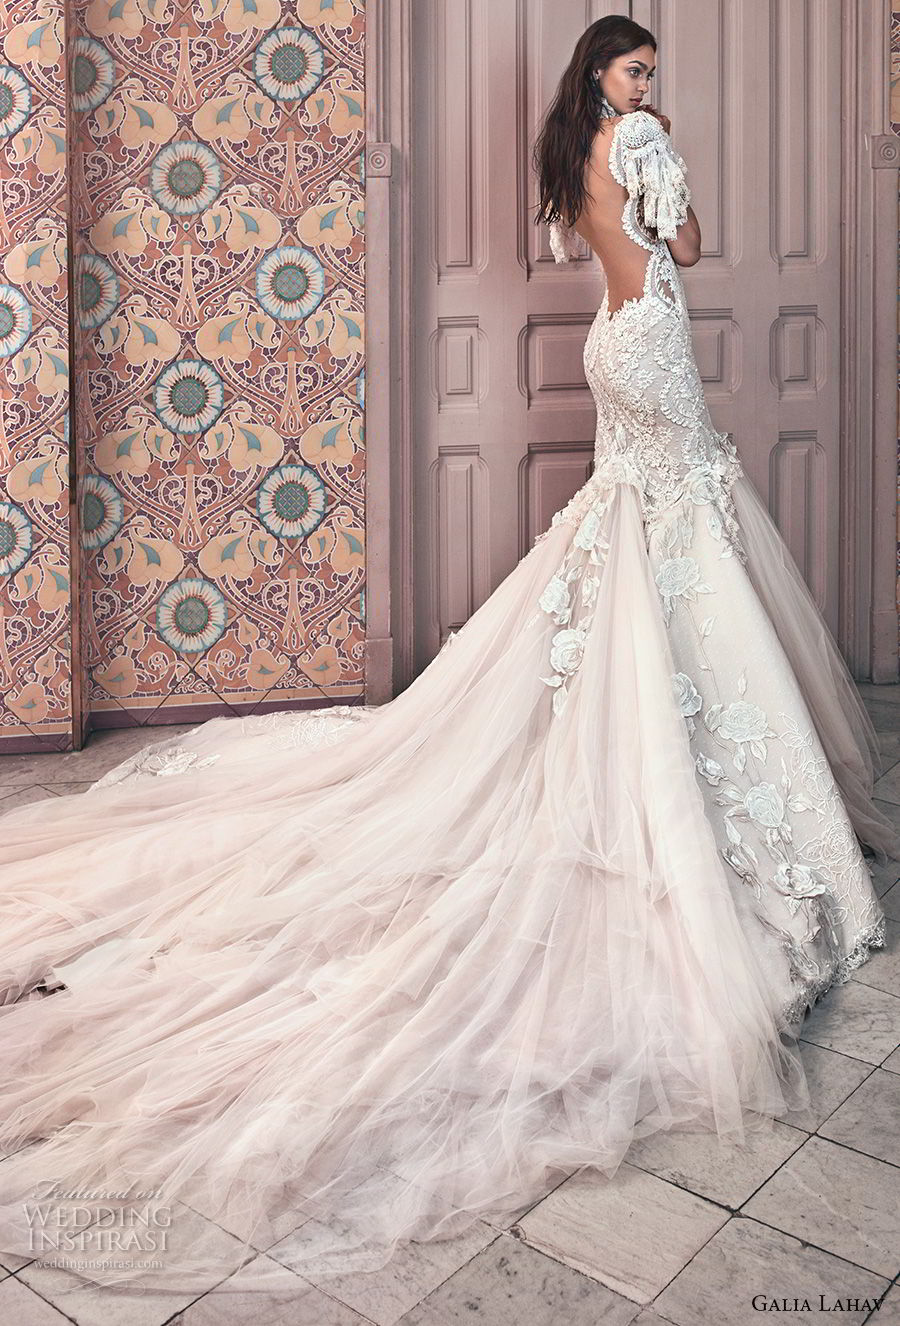 galia lahav spring 2018 bridal short sleeves illusion high sweetheart neck heavily embellished bodice tulle skirt ivory color mermaid wedding dress open low back royal train (ms genesis) bv